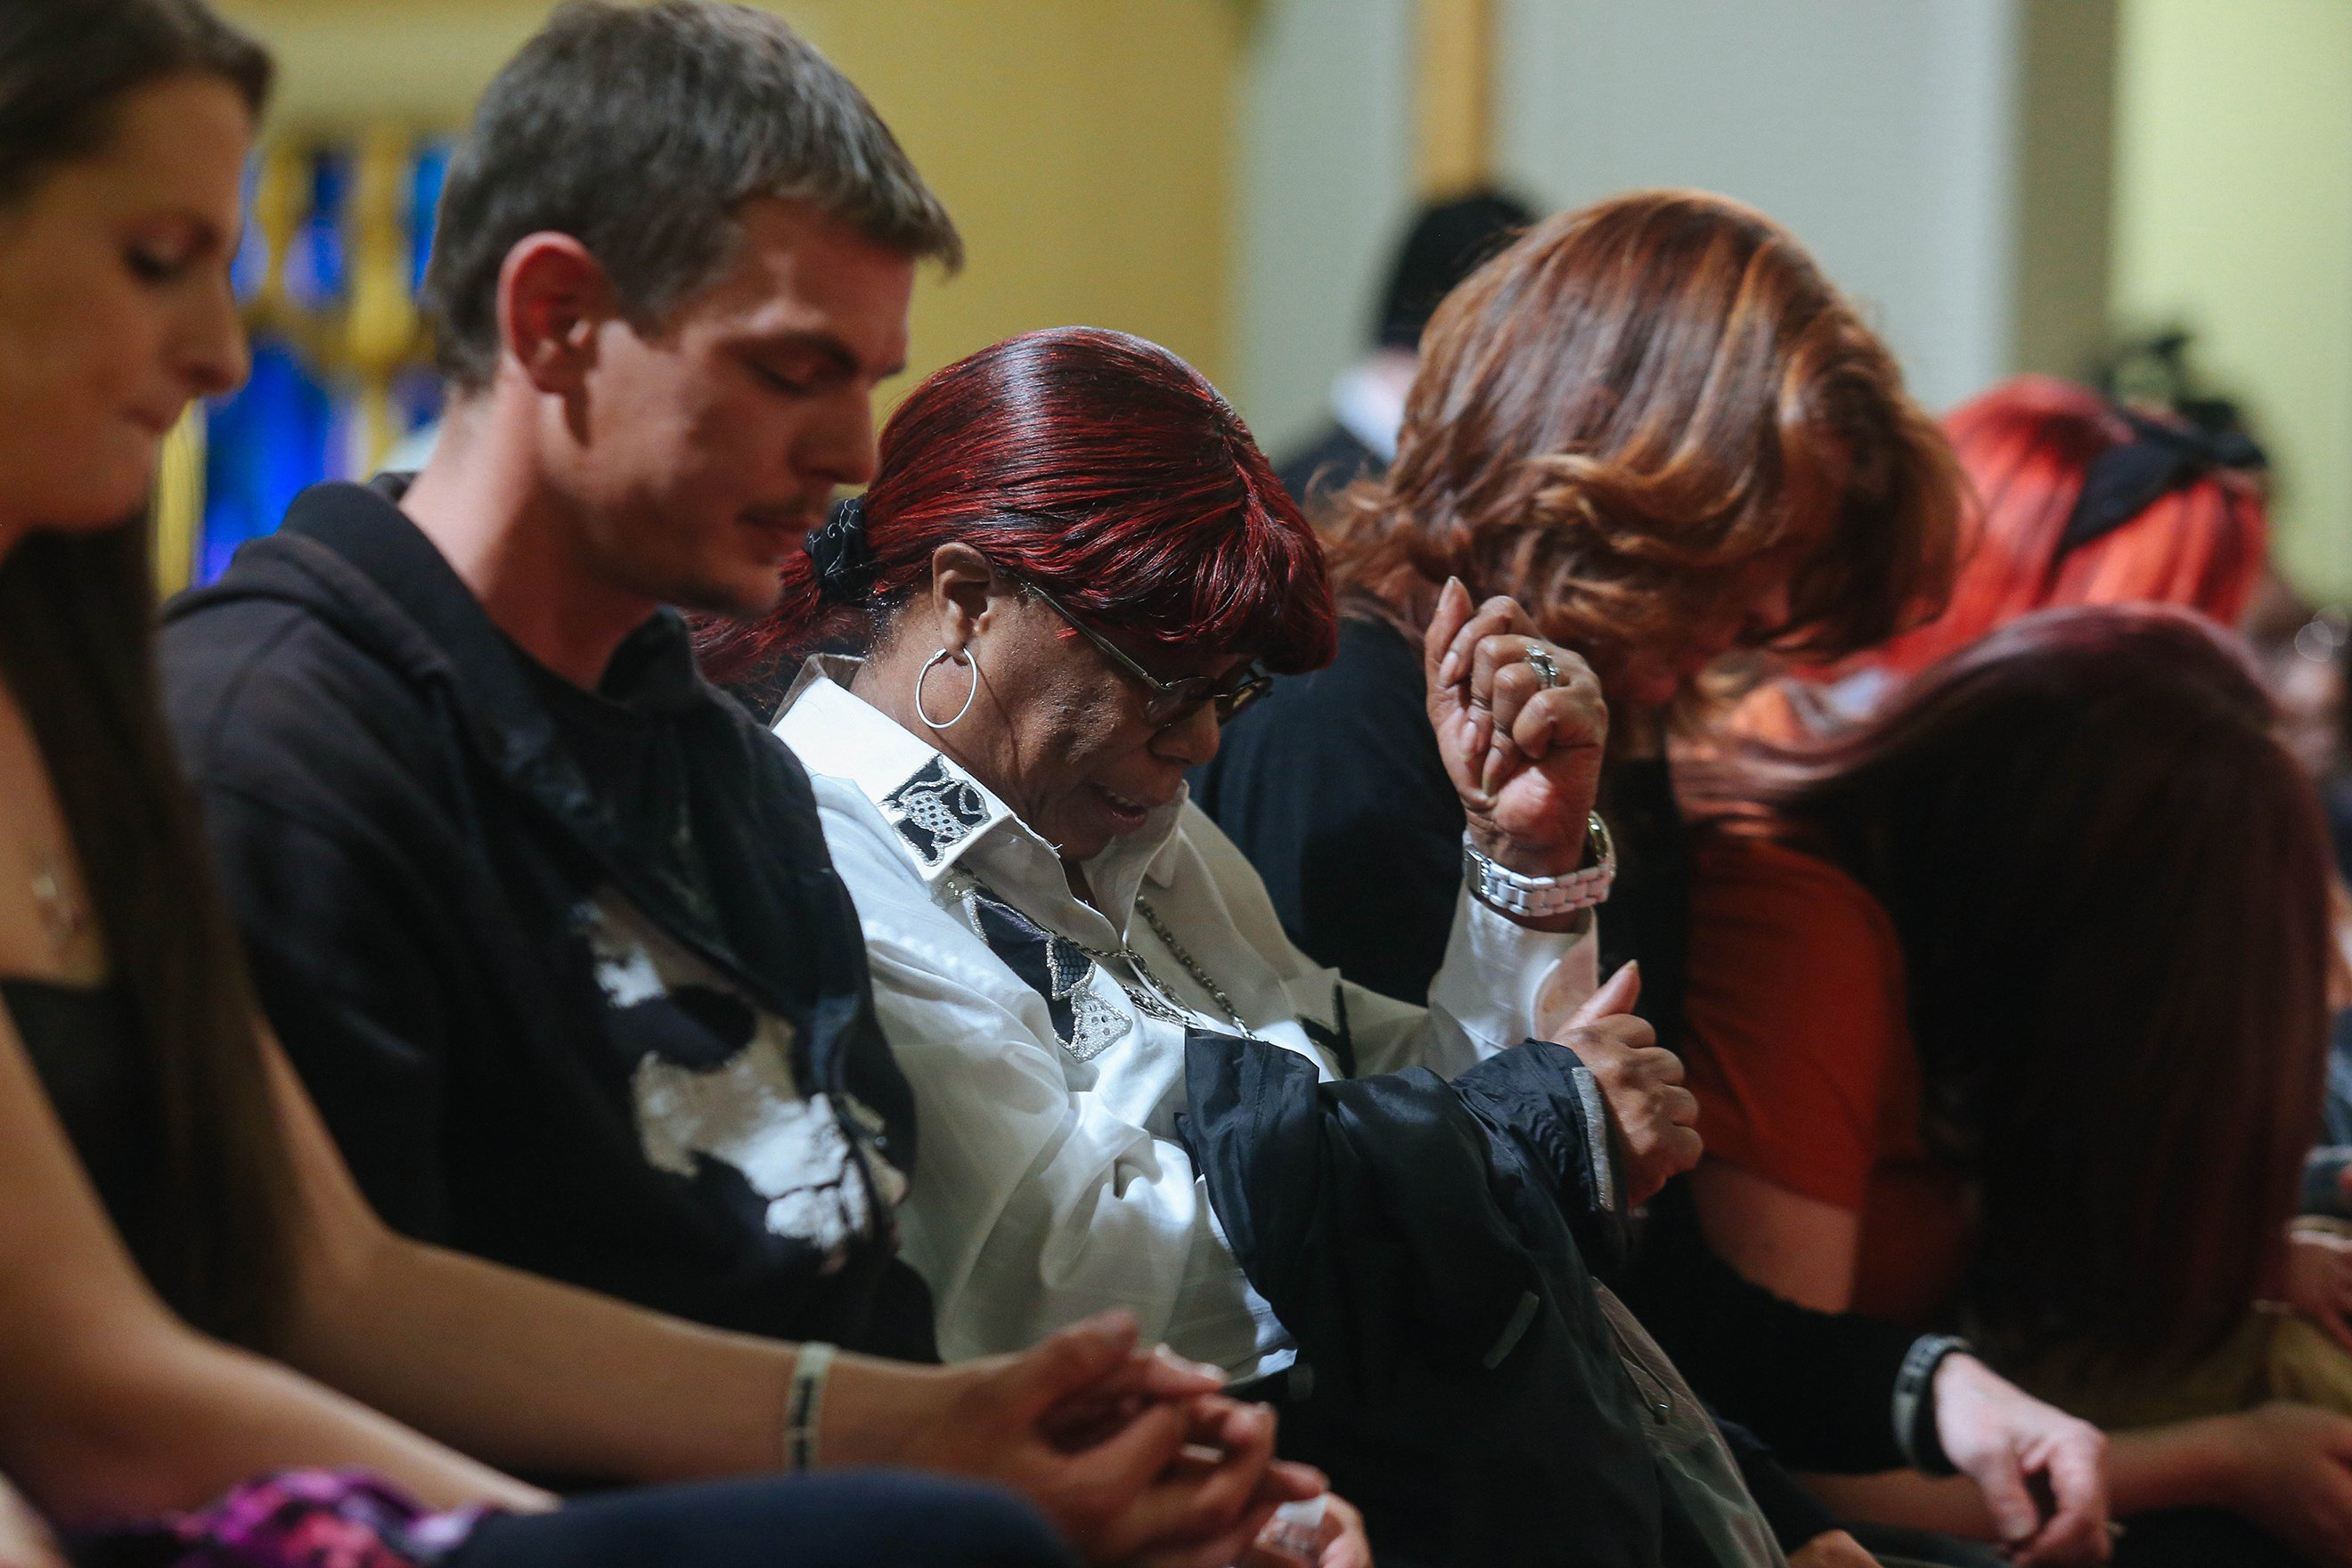 Retired nurse Deborah Hughes saved a man's life when she shielded him from an attacking mob. Here she is seen at praying during a vigil at Little Rock Baptist Church in Detroit on Thursday April 10, 2014.